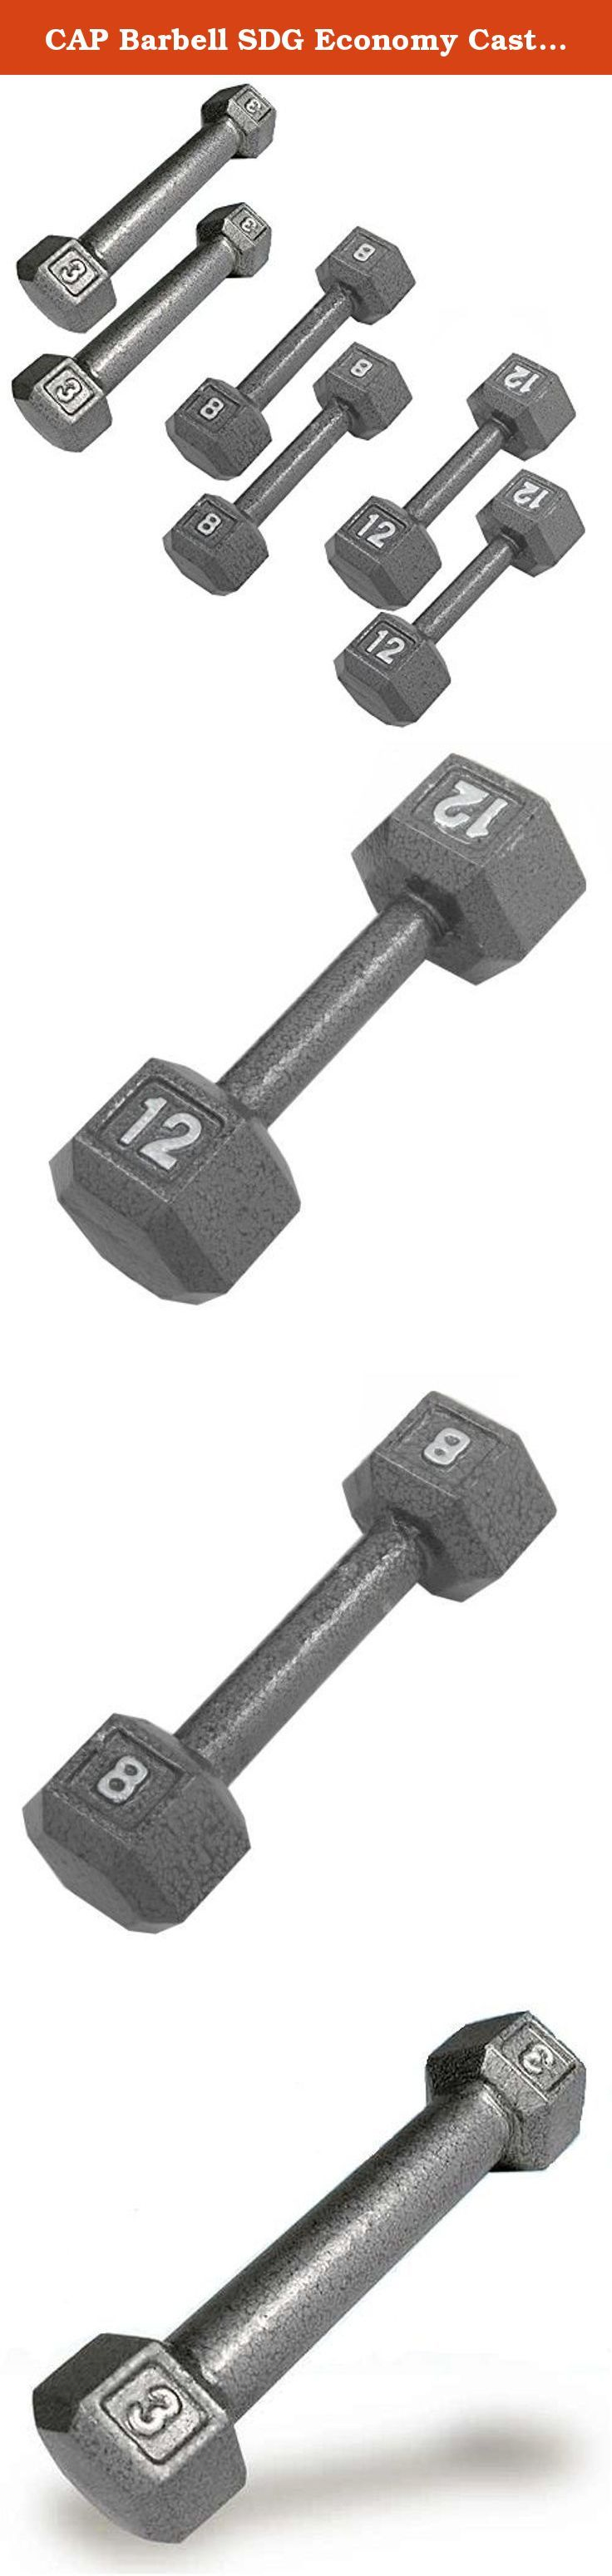 CAP Barbell SDG Economy Cast Iron Hex Dumbbell Set - 3, 8, 12 lbs (3 pairs) - For Beginners, Rehabilitation, High Rep Training. Economy Cast Iron Hex Dumbbell Sets from CAP Barbell - Hex dumbbell sets are often the perfect dumbbell choice for home gym and garage gym use. They are economical and space efficient and for a lot of people that is the most important criteria when purchasing dumbbells for home use. Hexagonal dumbbell heads are non-rolling when set down on the floor or racks…